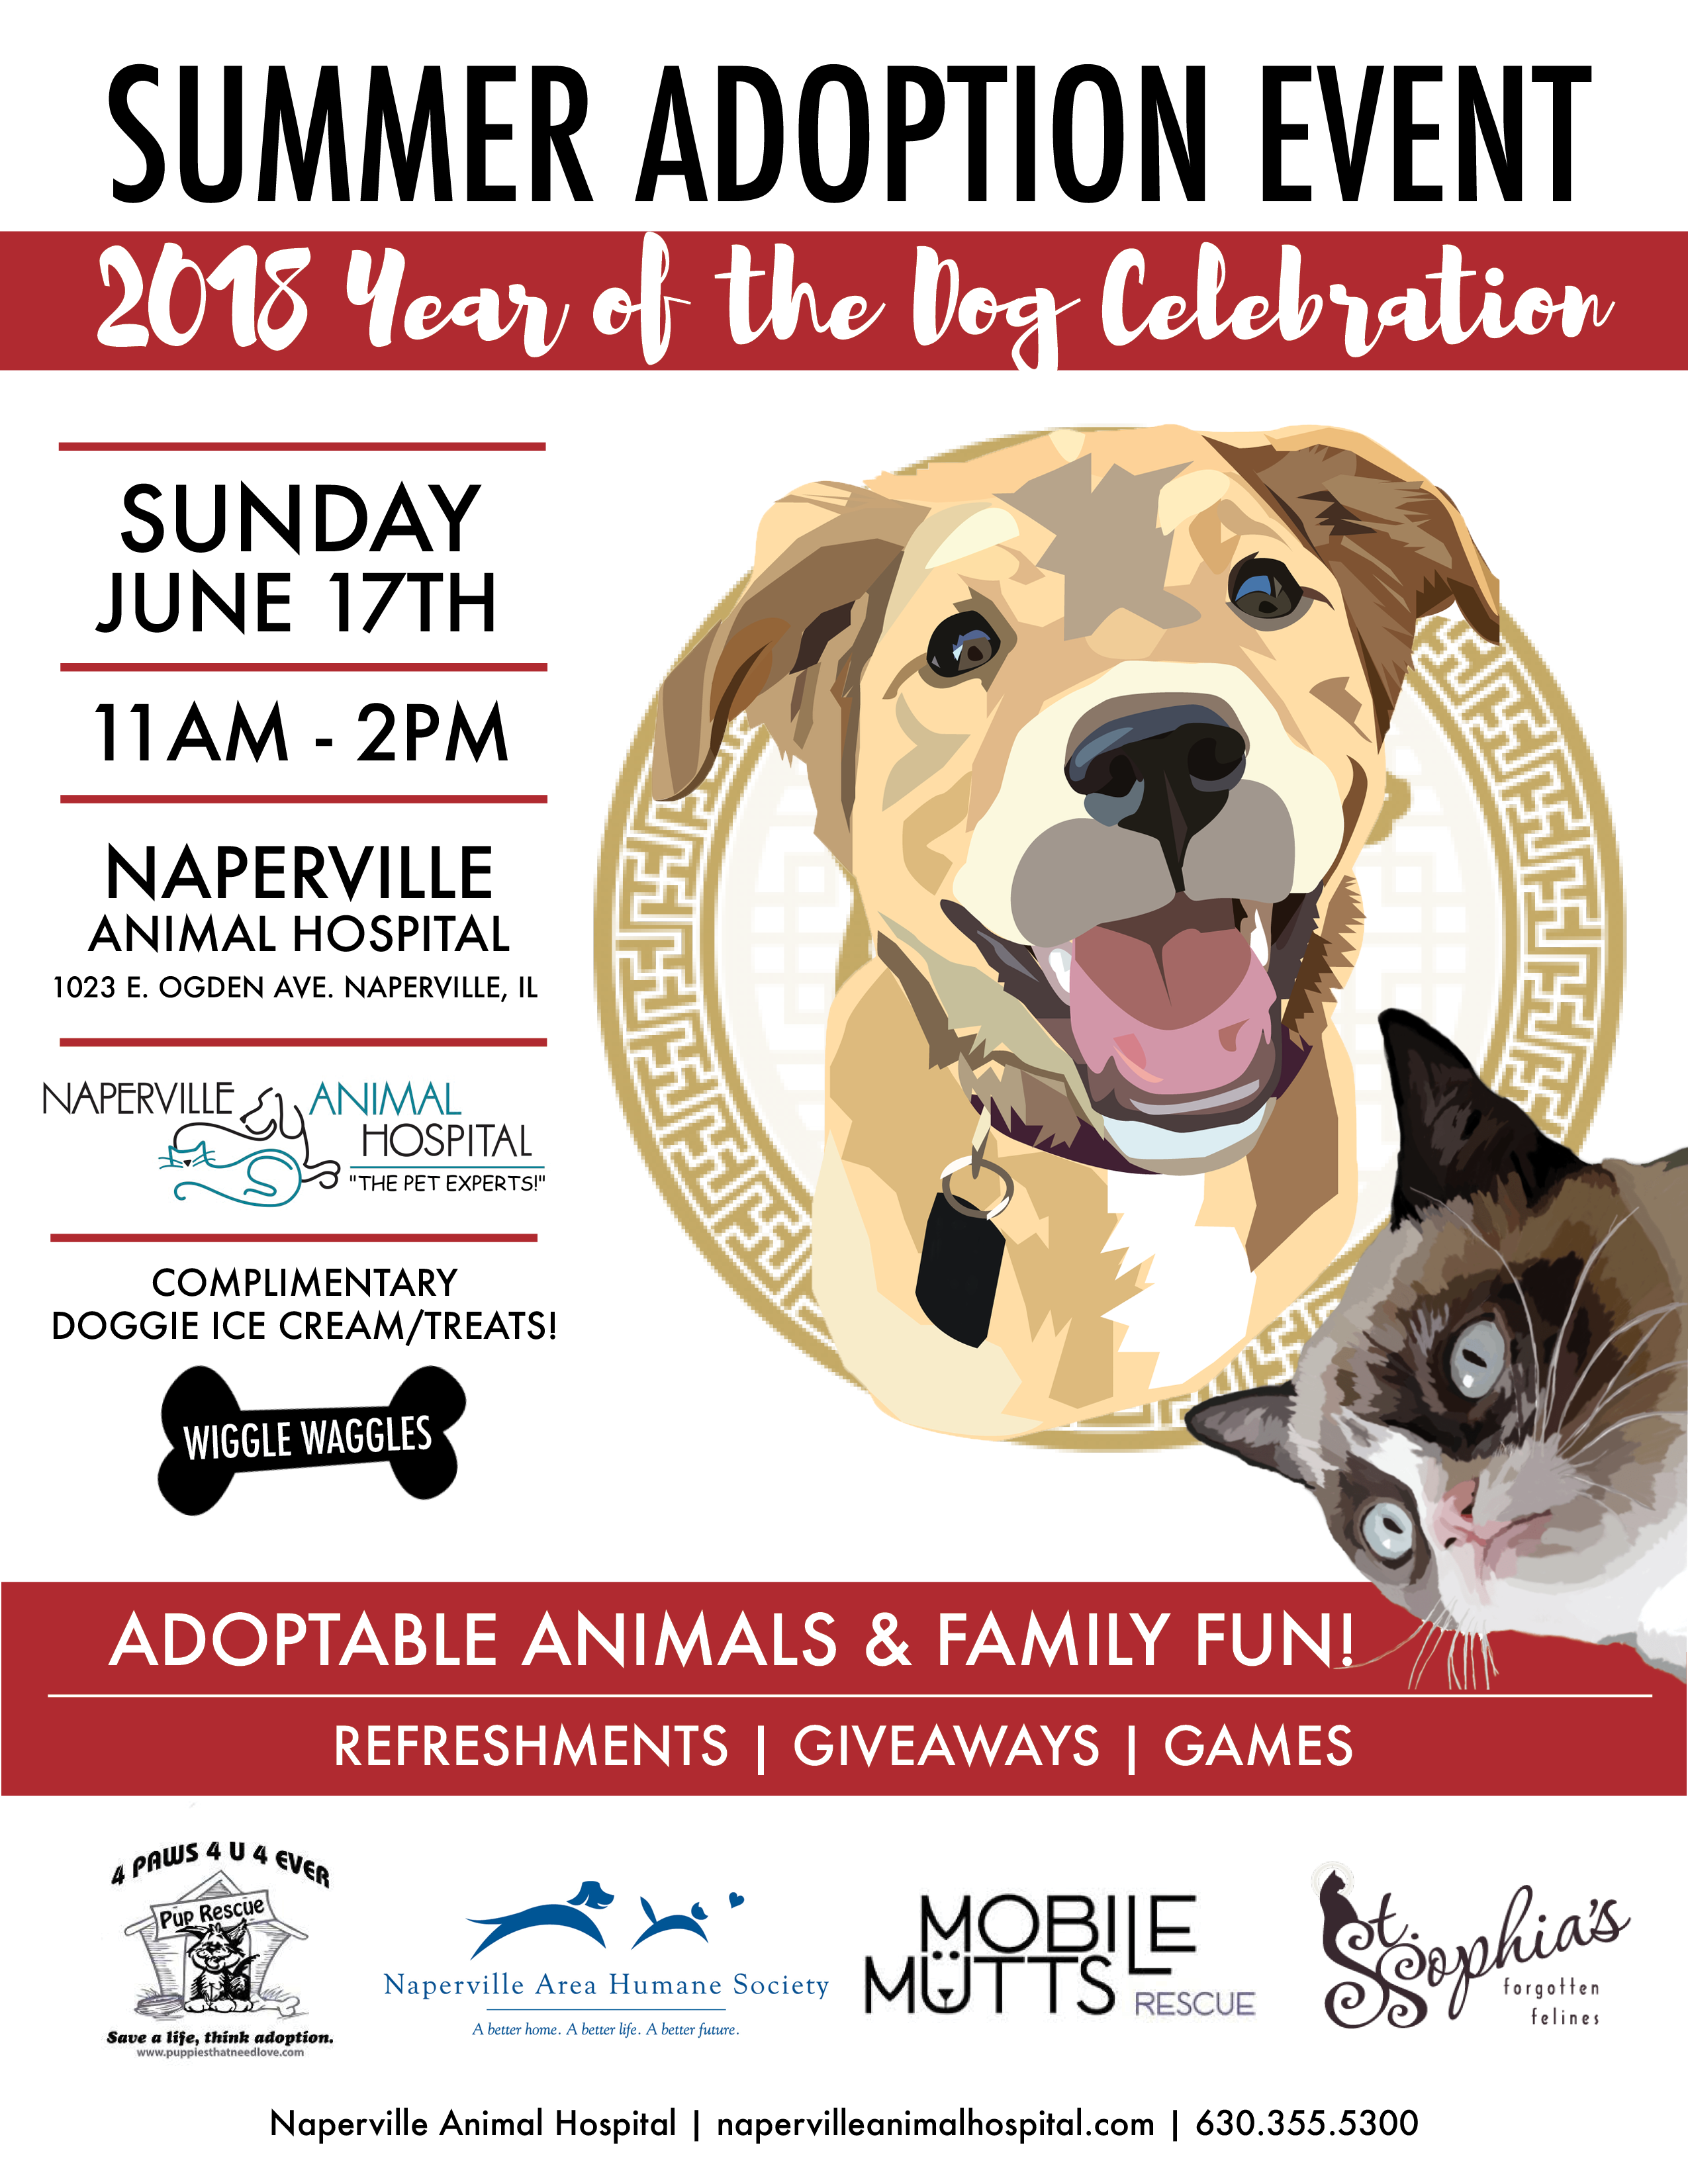 Animal care archives naperville animal hospital naperville il join us for our annual summer adoption event this year well be celebrating the year of the dog and all rescue pets stop by on sunday june 17th from 11am solutioingenieria Choice Image